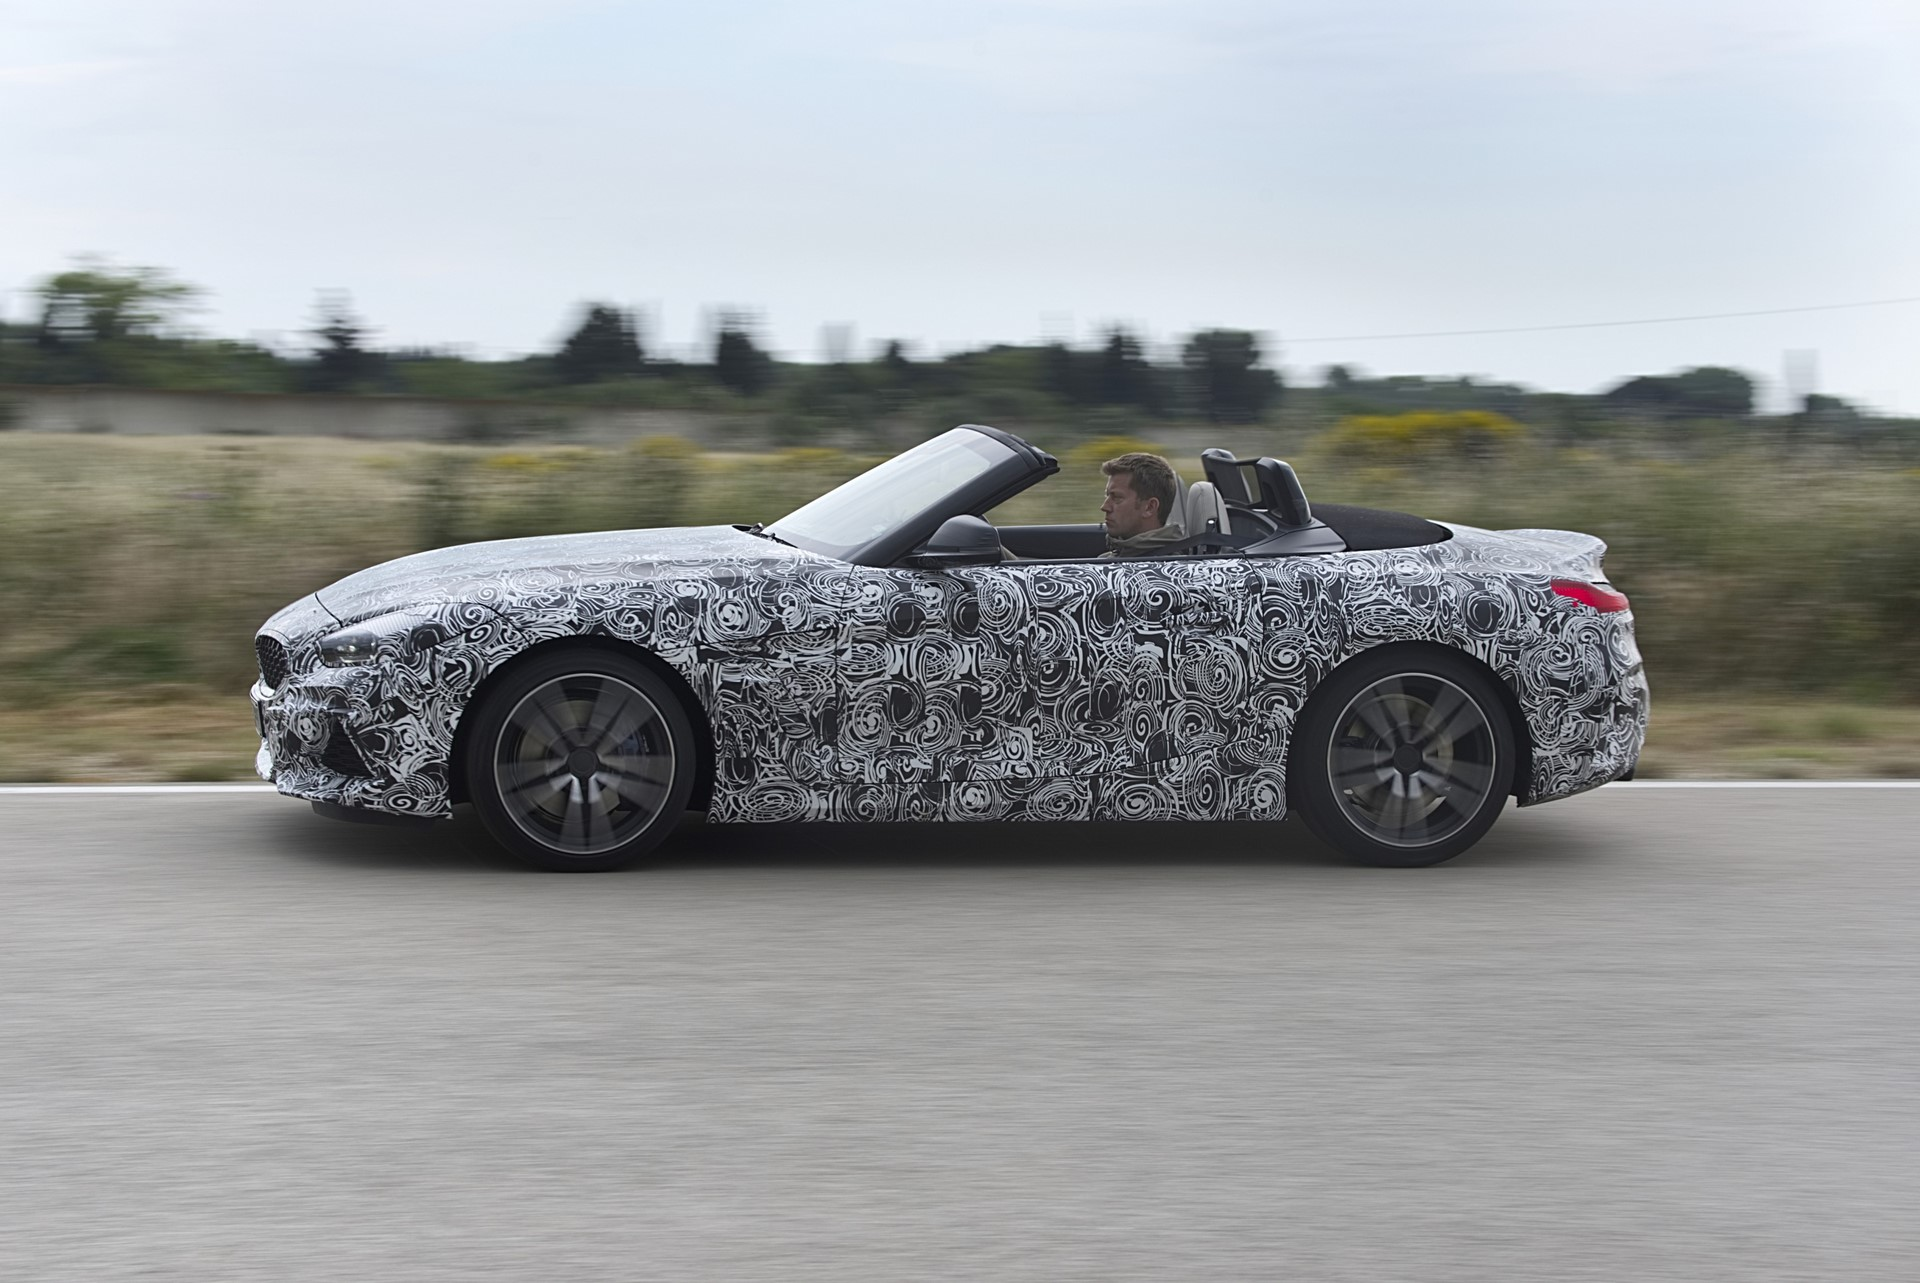 BMW Z4 M40i 2019 official spy photos (19)